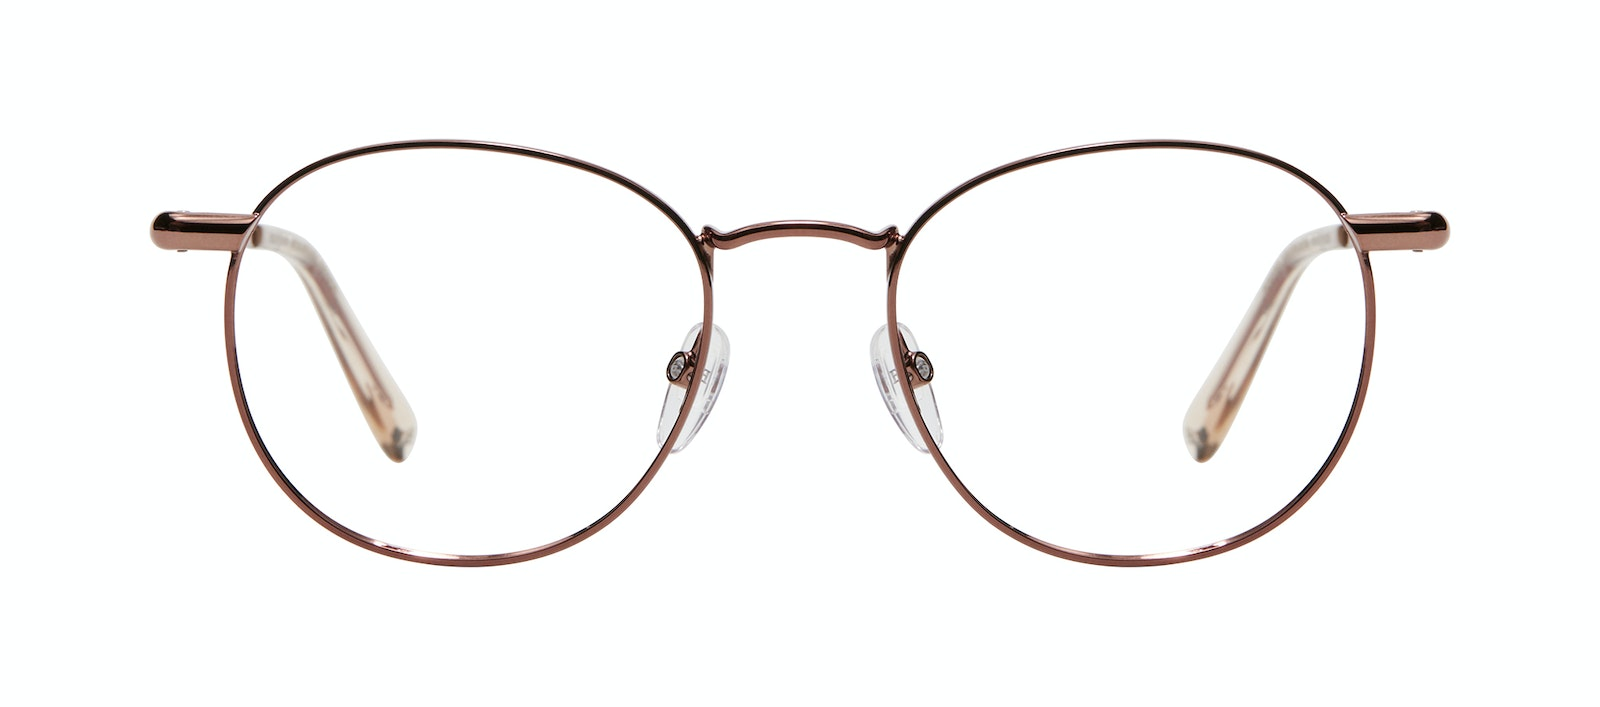 Affordable Fashion Glasses Round Eyeglasses Women Divine L Copper Front